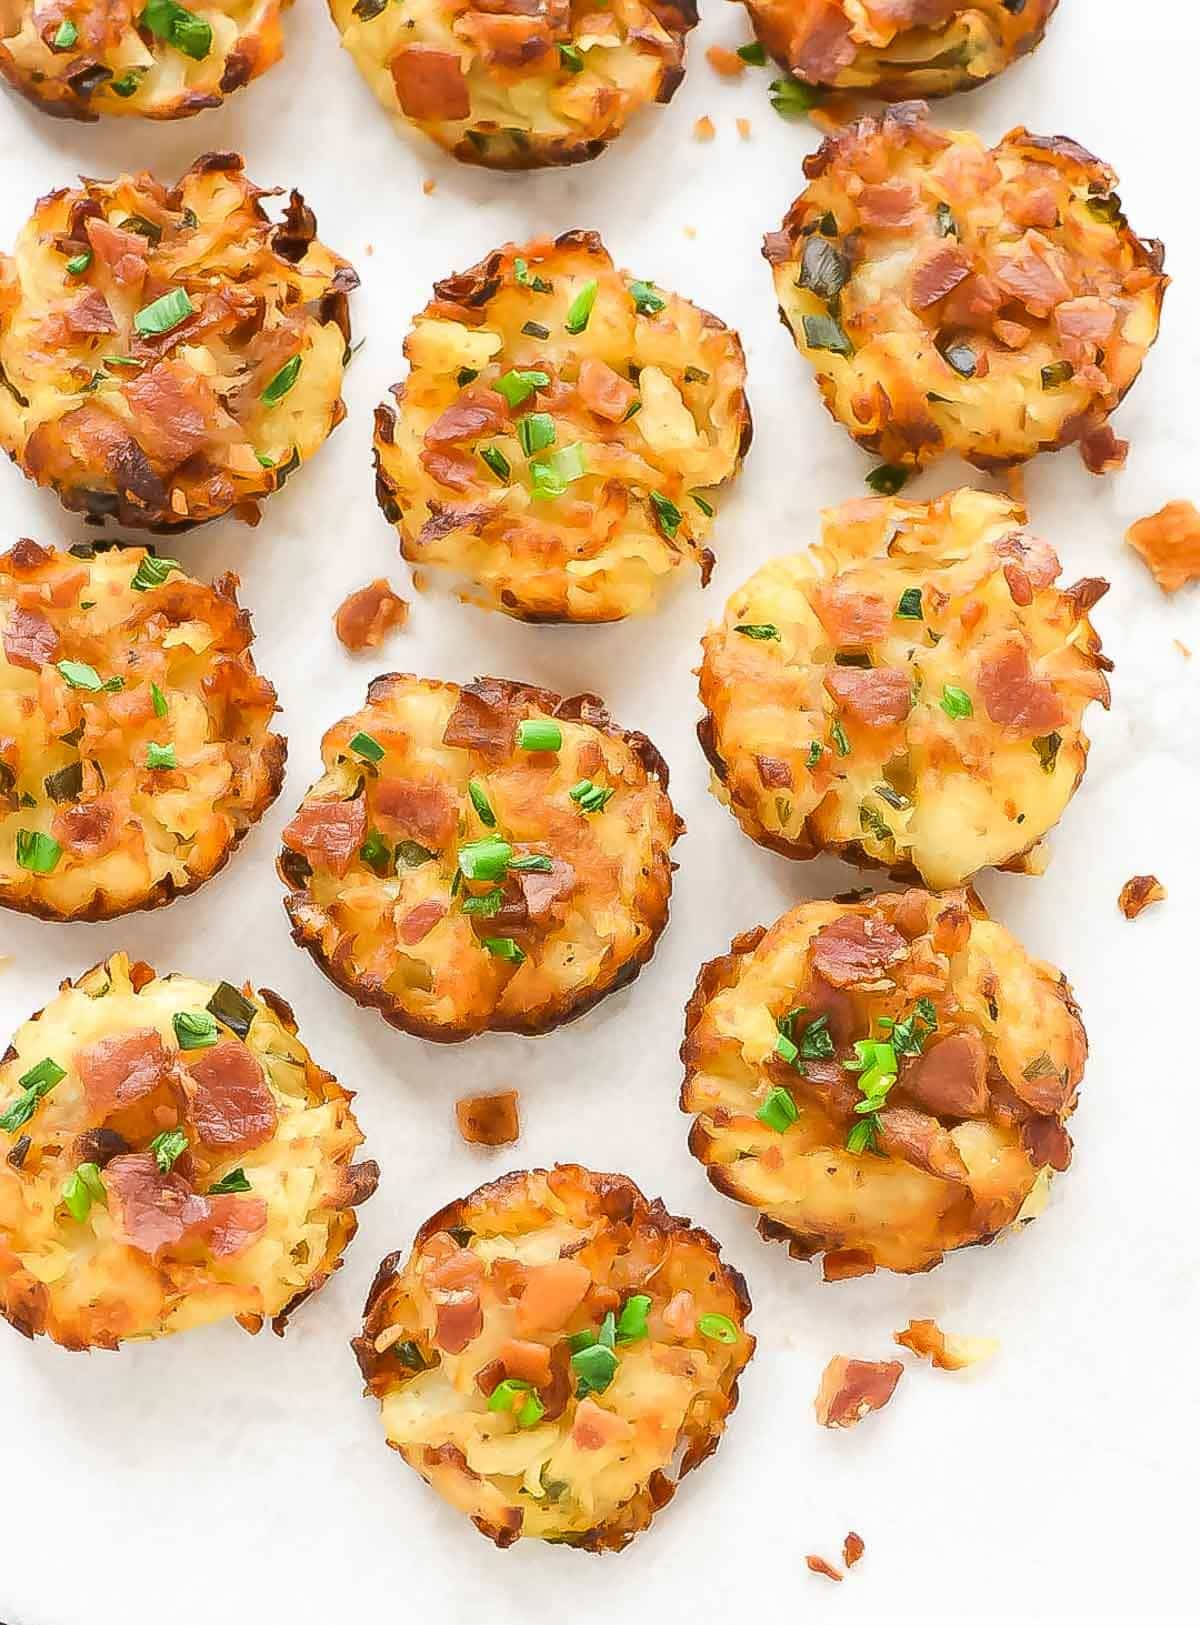 Homemade Tater Tots with Cheese and Bacon